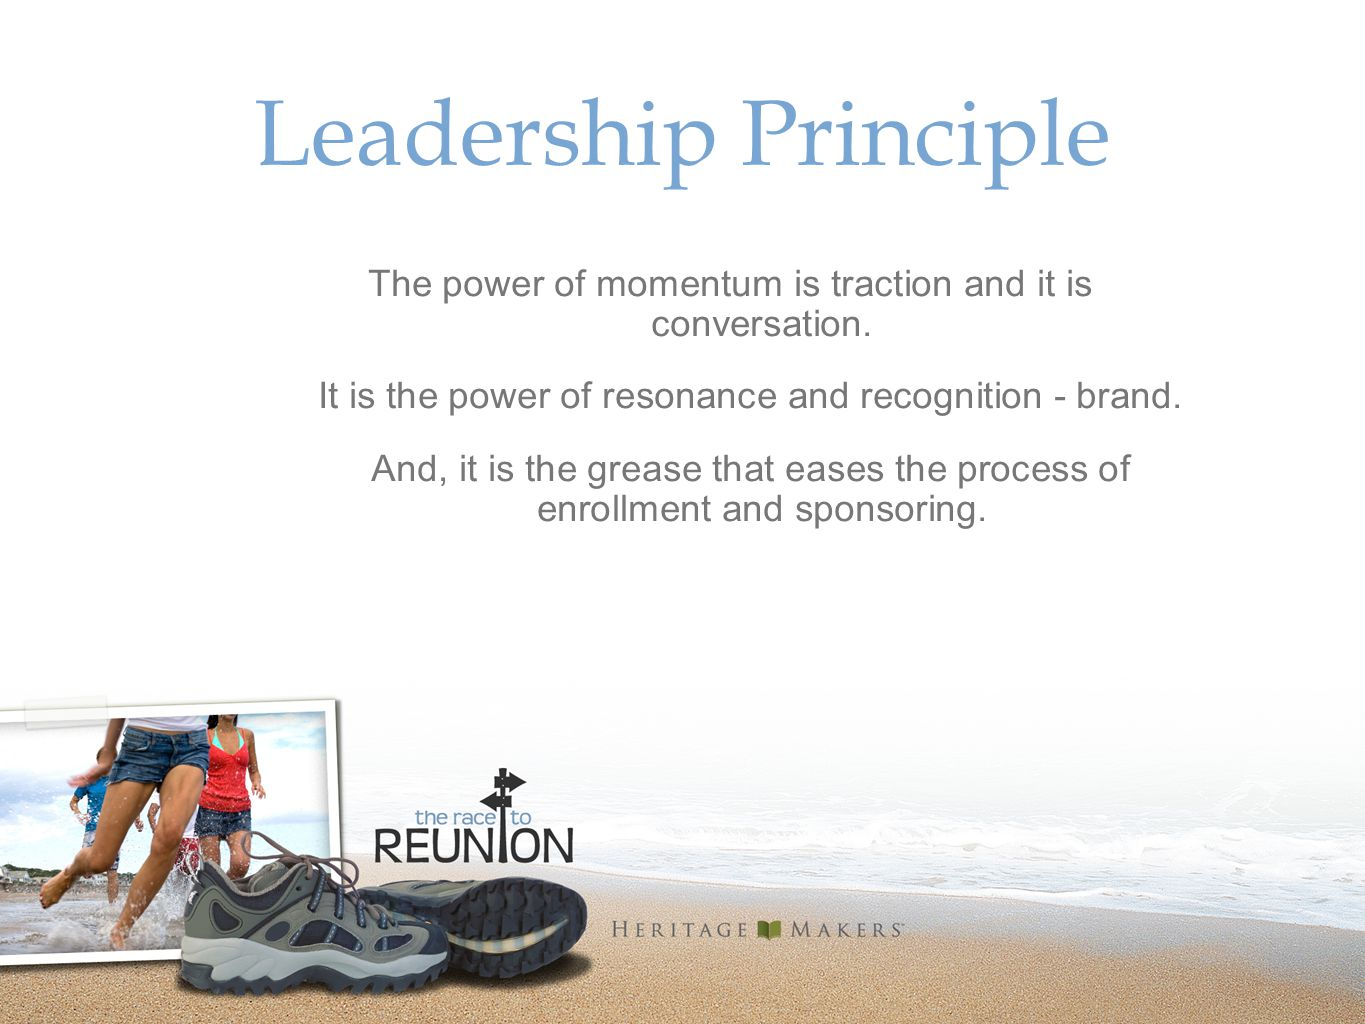 Leadership Principle The power of momentum is traction and it is conversation.